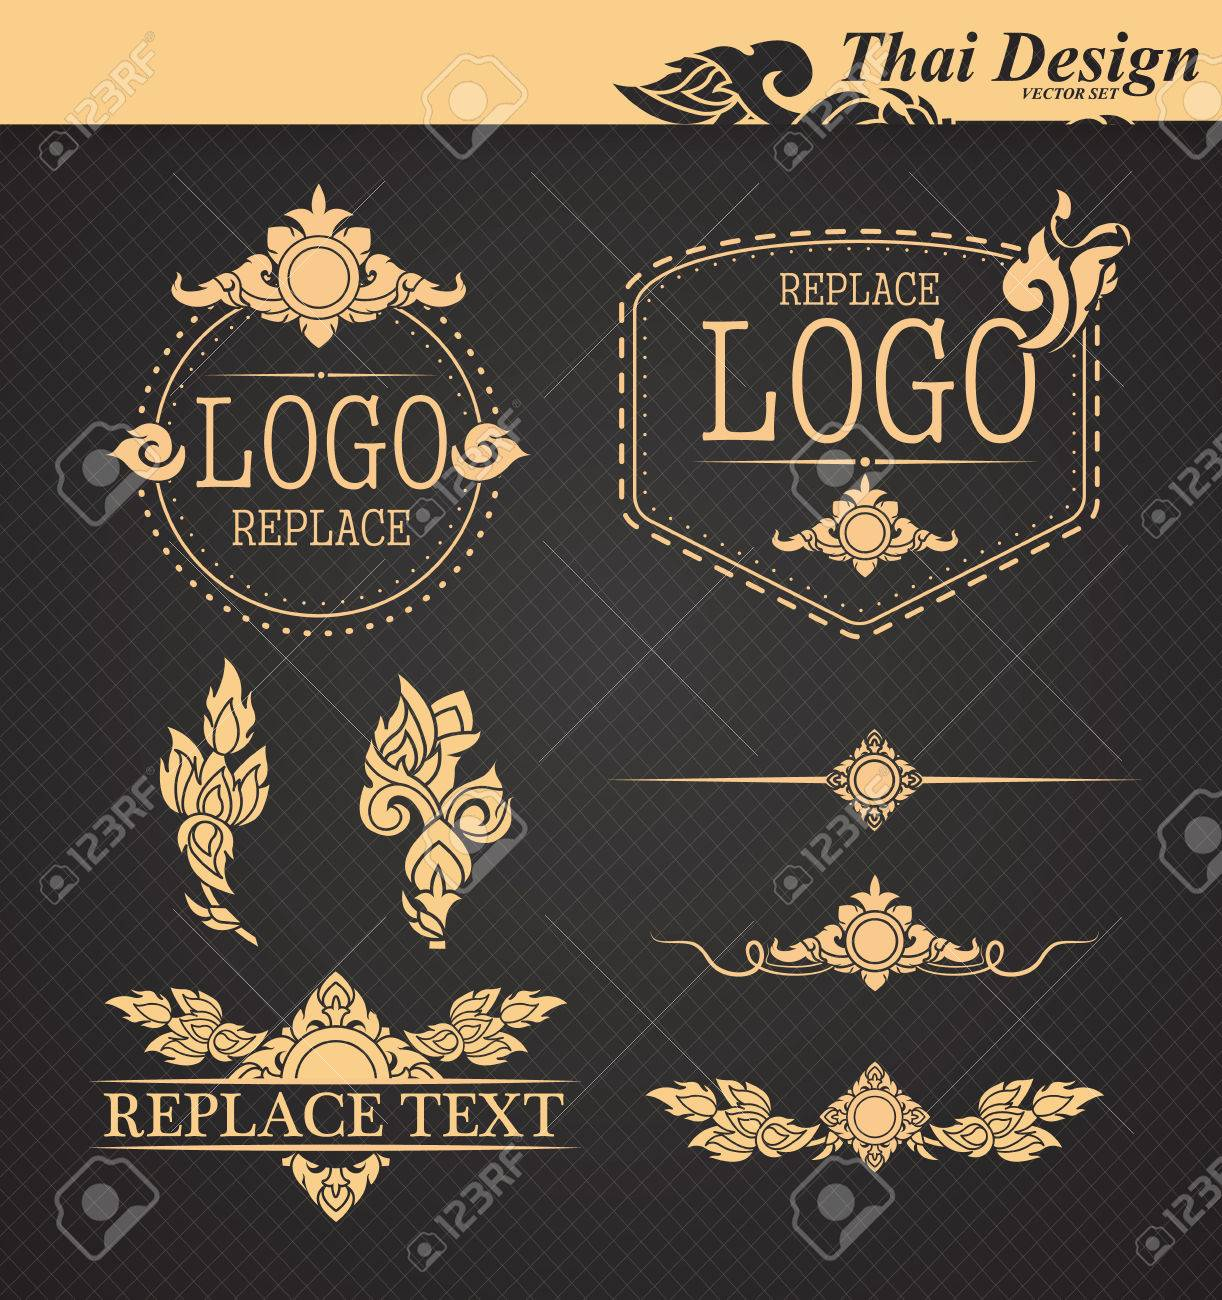 vector set: thai art design elements Banque d'images - 35511856